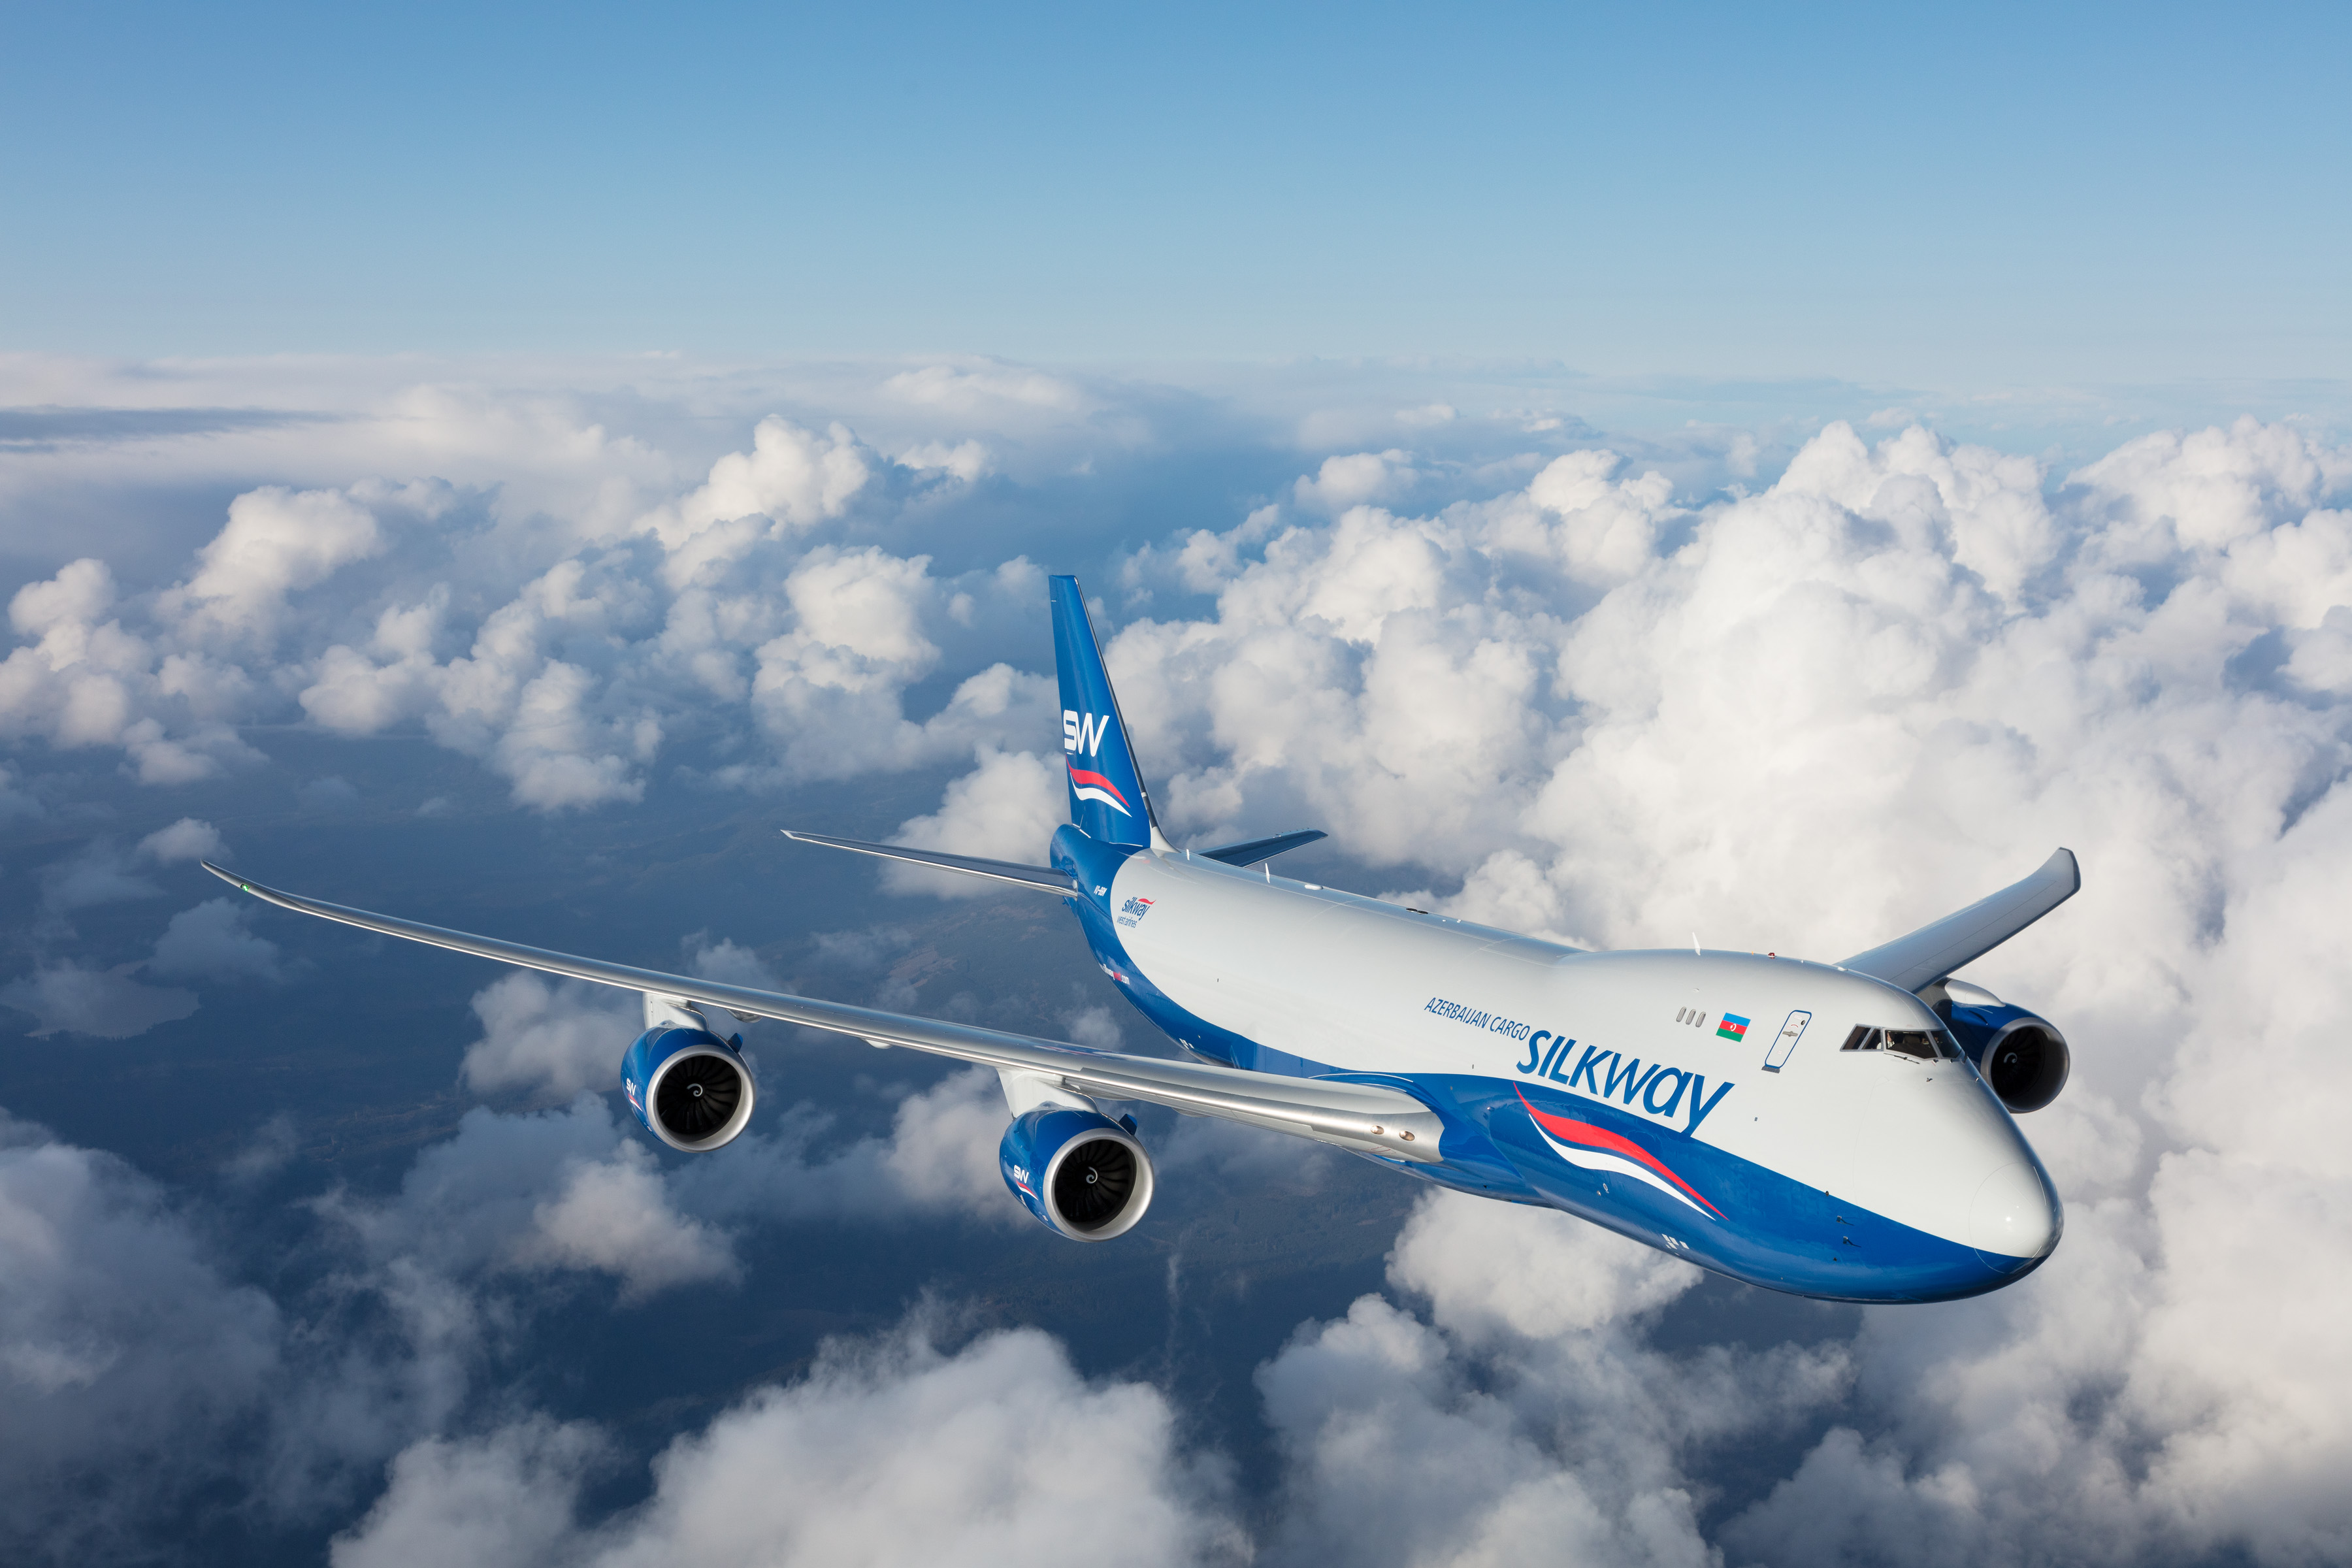 Silkway West Airlines pursues a strategic cooperation with jal cargo